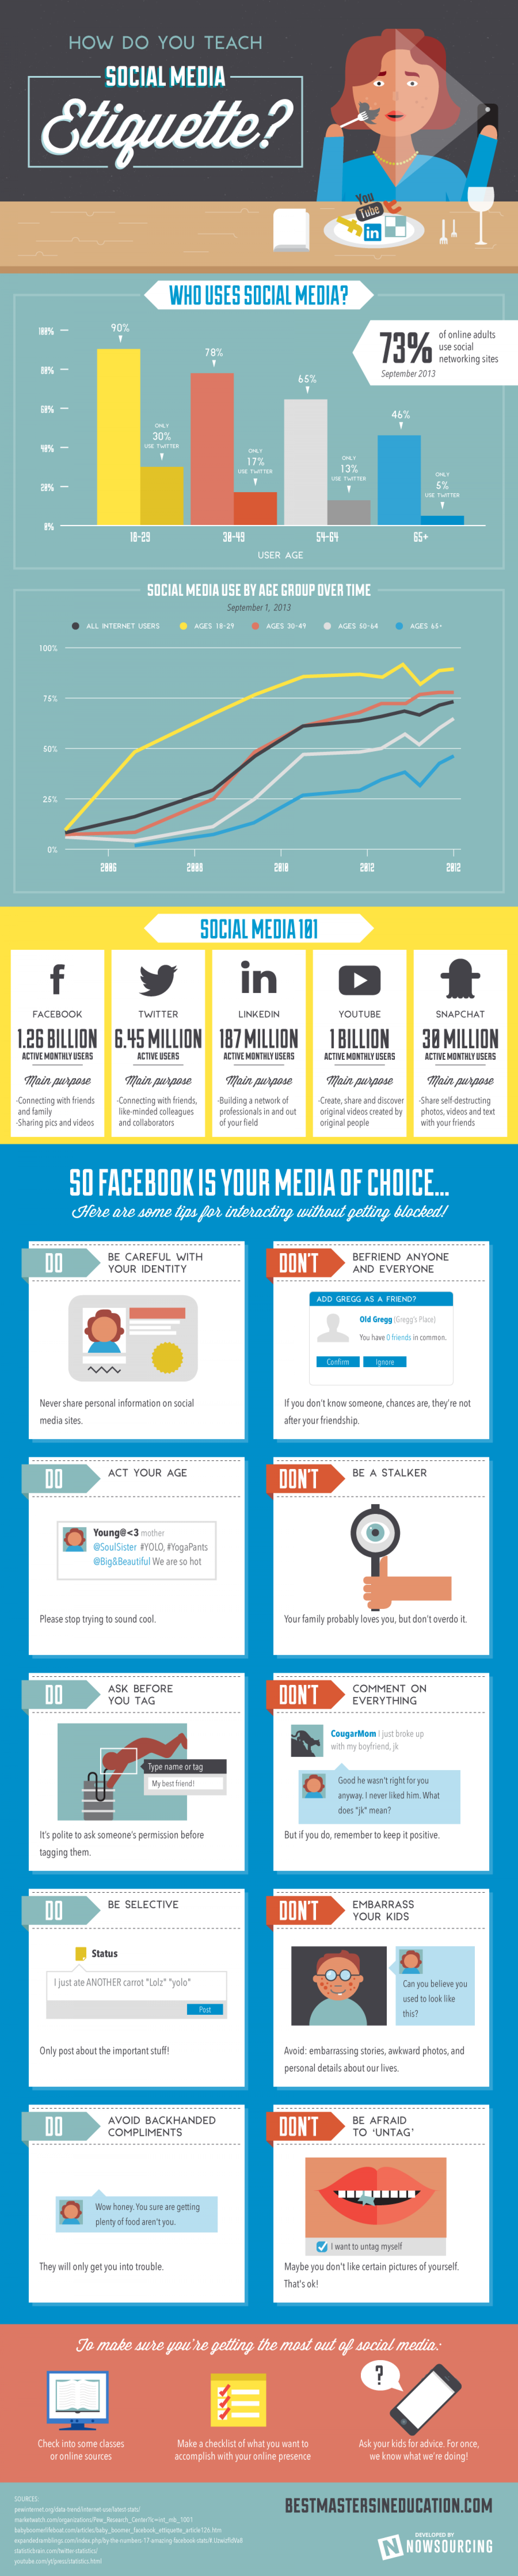 How Do You Teach Social Media Etiquette? Infographic